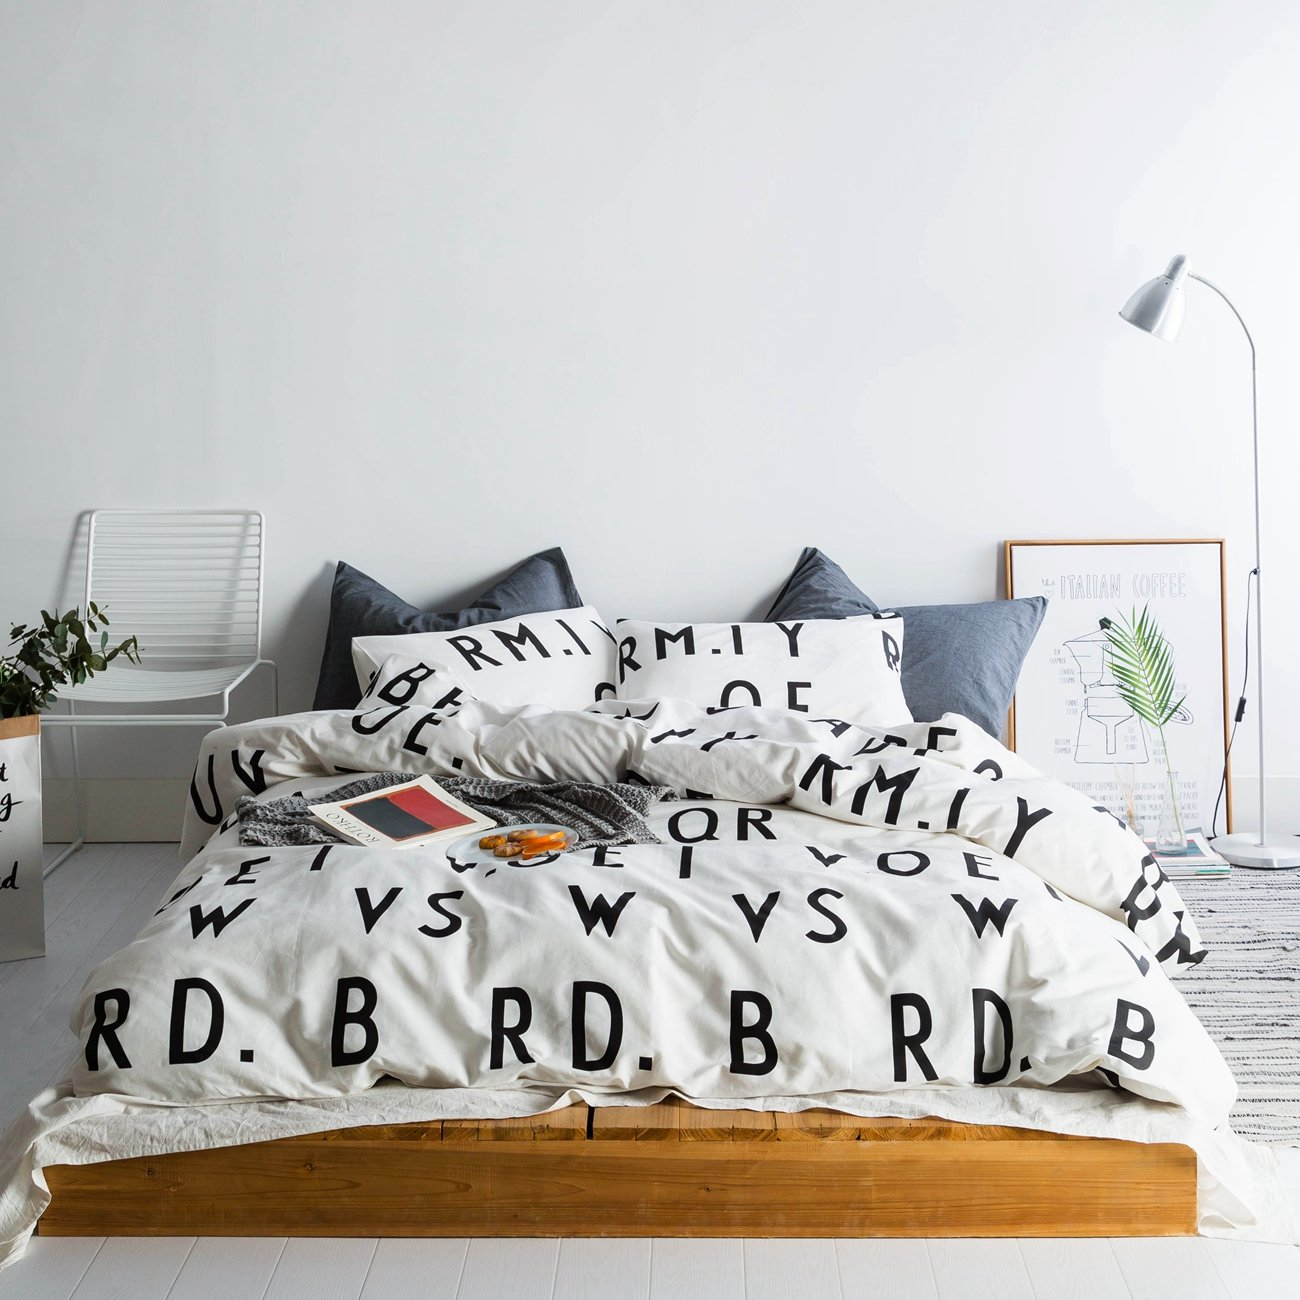 Susybao 3 Pieces Duvet Cover Set 100 Percents Natural Cotton King Size Black White Words Printed Patterns Bedding With Zipper Ties 1 Duvet Cover 2 Pillowcases Hotel Quality Soft Comfortable Modern Durable by Susybao